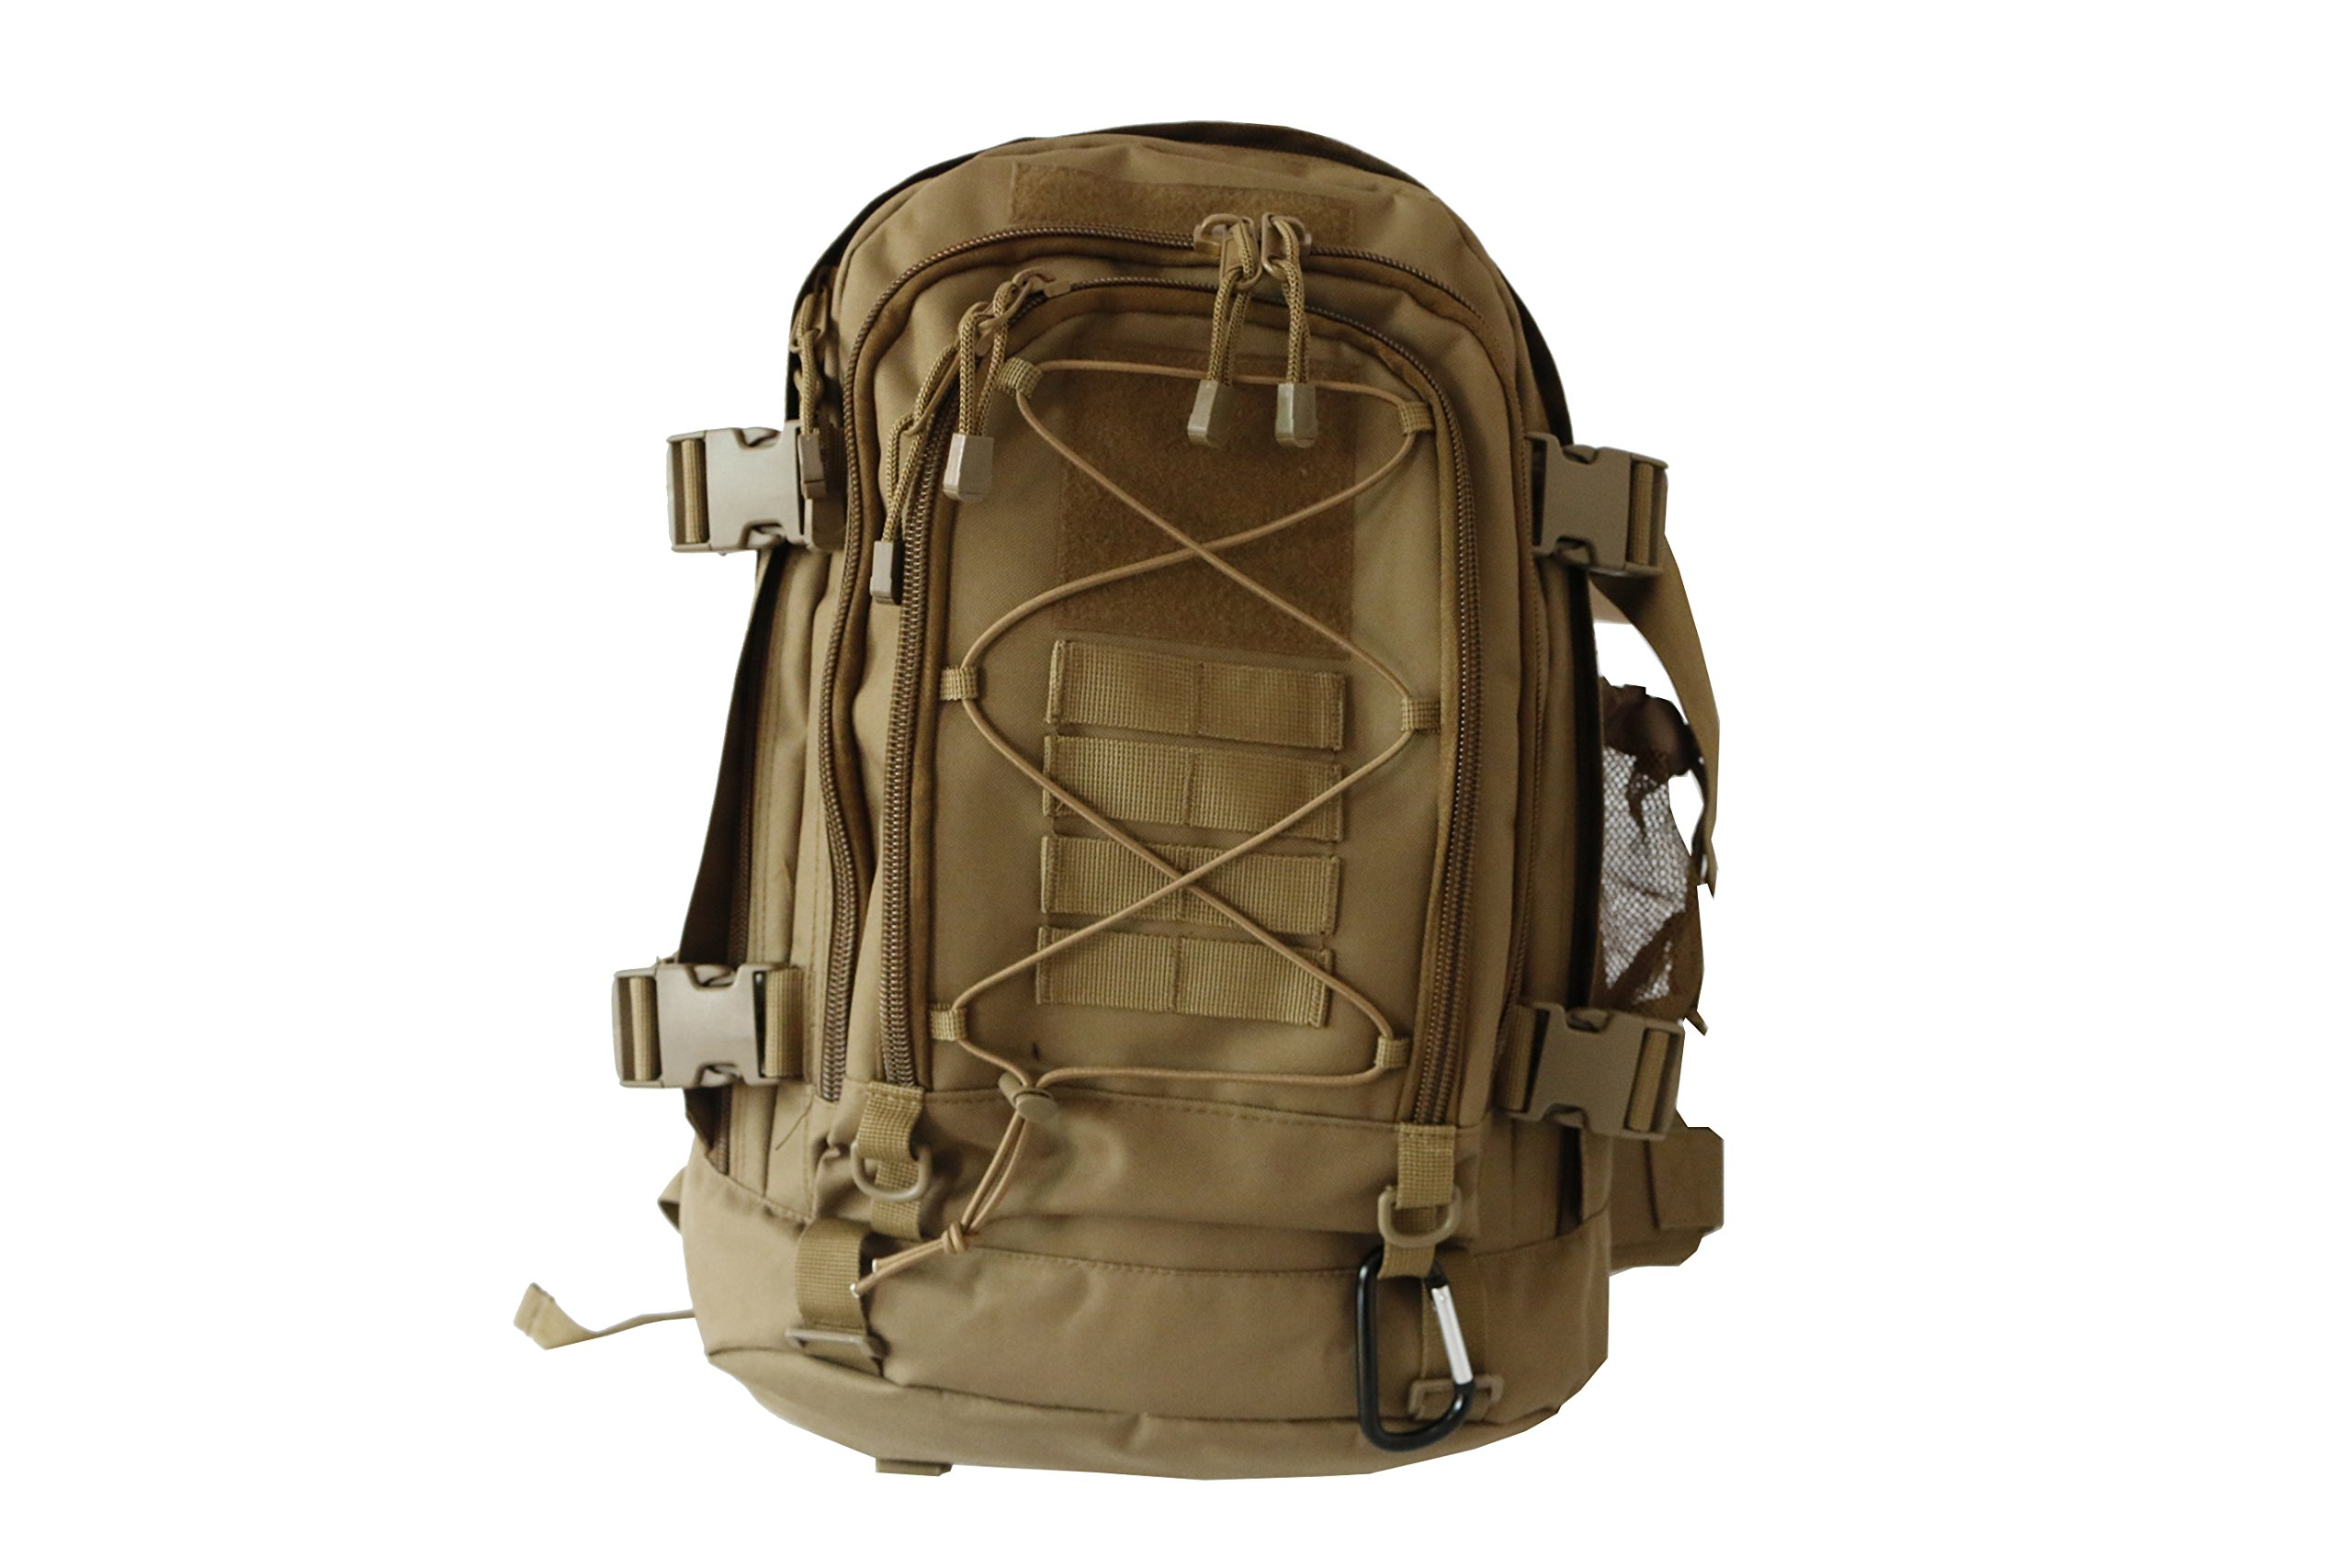 ARMYCAMOUSA Expandable 40-48 L Tactical Backpack Military Outdoor Sport Camping Hiking Trekking Bag (Coyote)